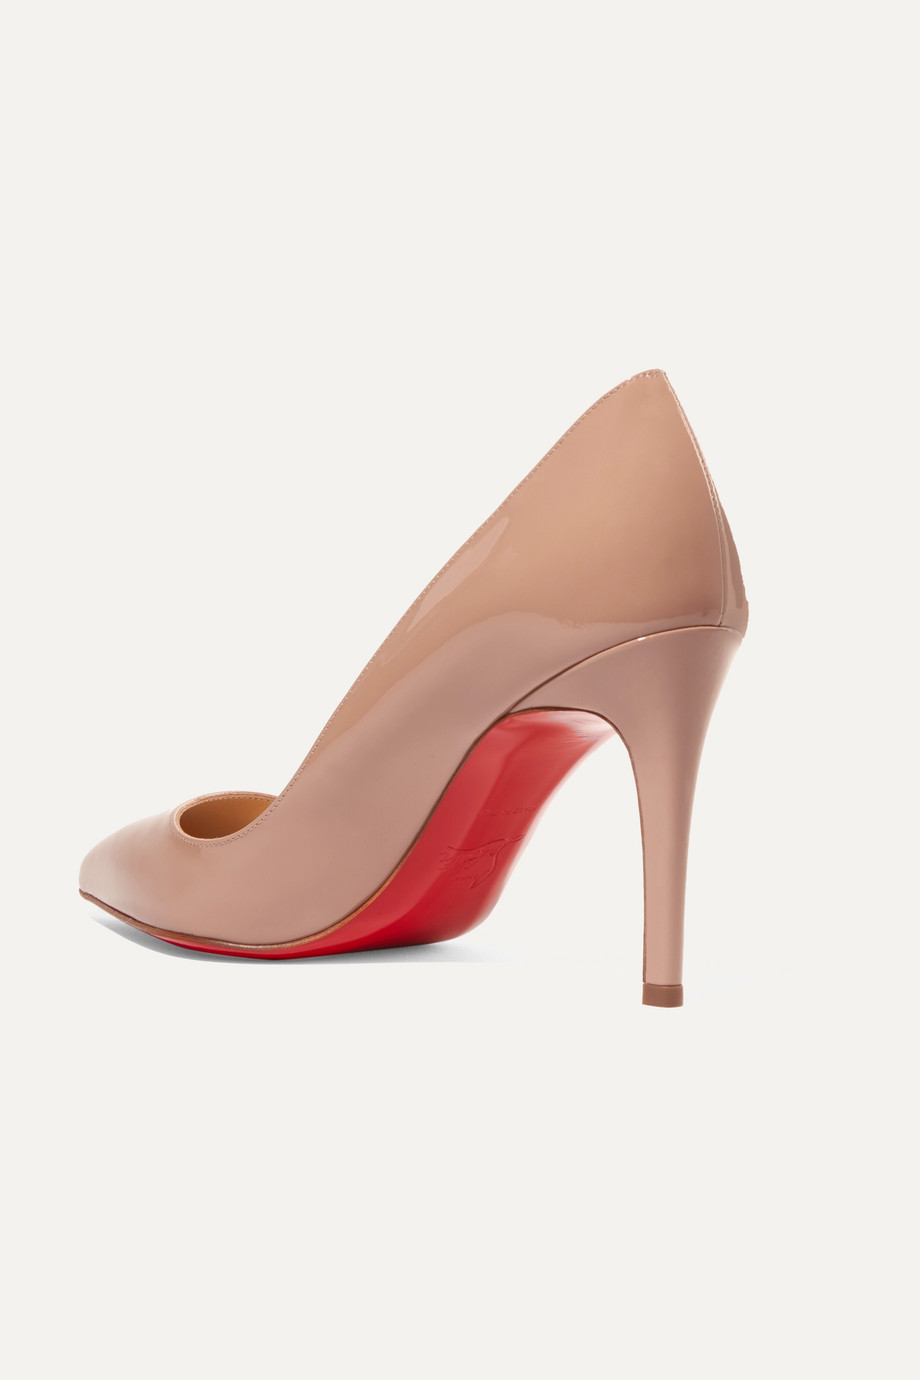 a6b4bf32cecd Christian Louboutin Pigalle Follies 85 patent-leather pumps